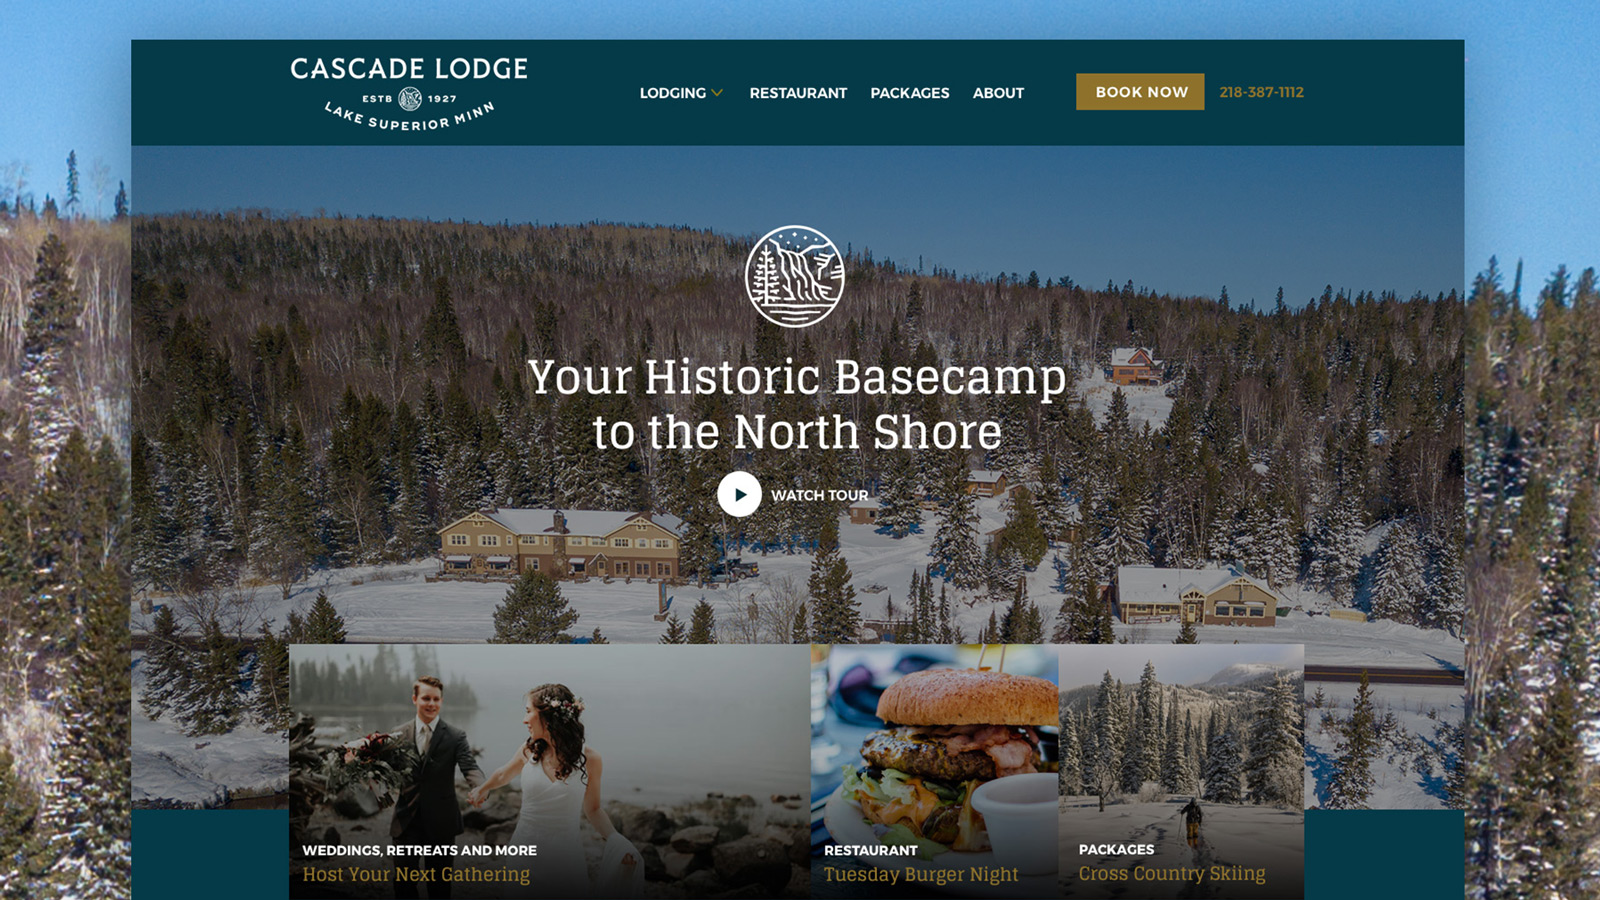 Cascade Lodge Lake Superior Website Design